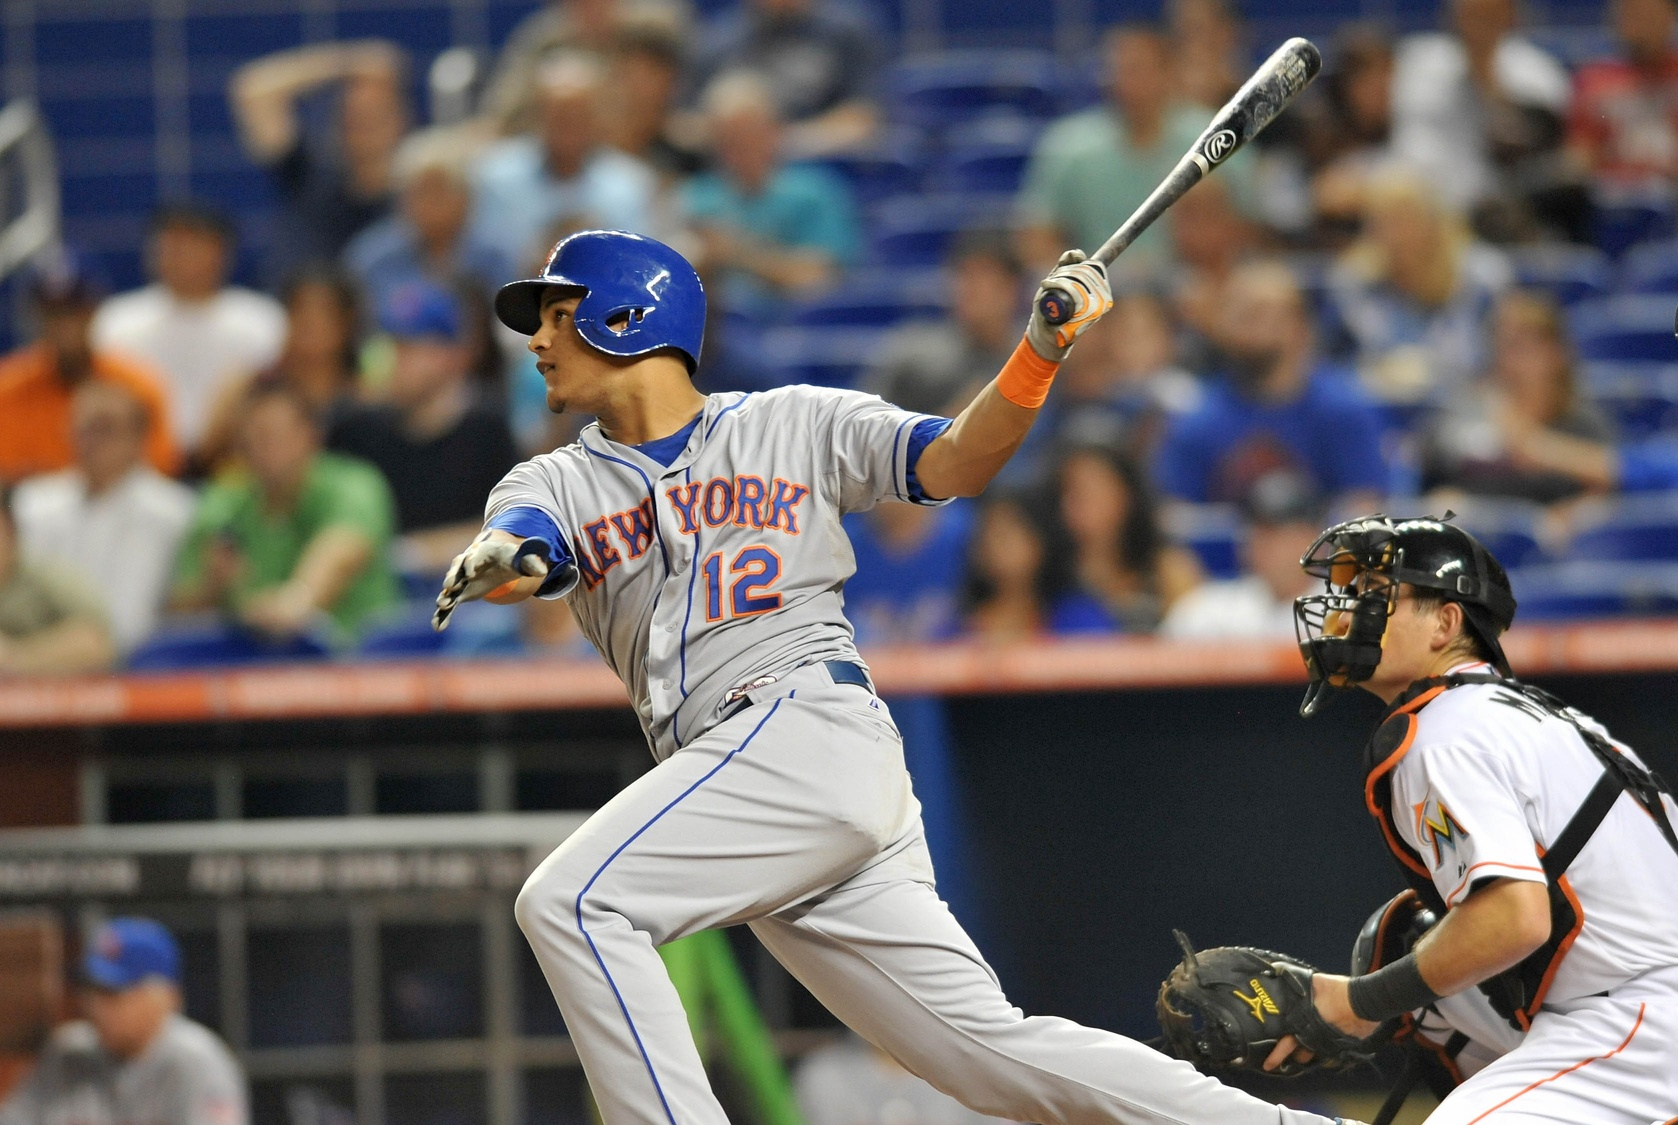 Juan Lagares Heading To New York (Knee)